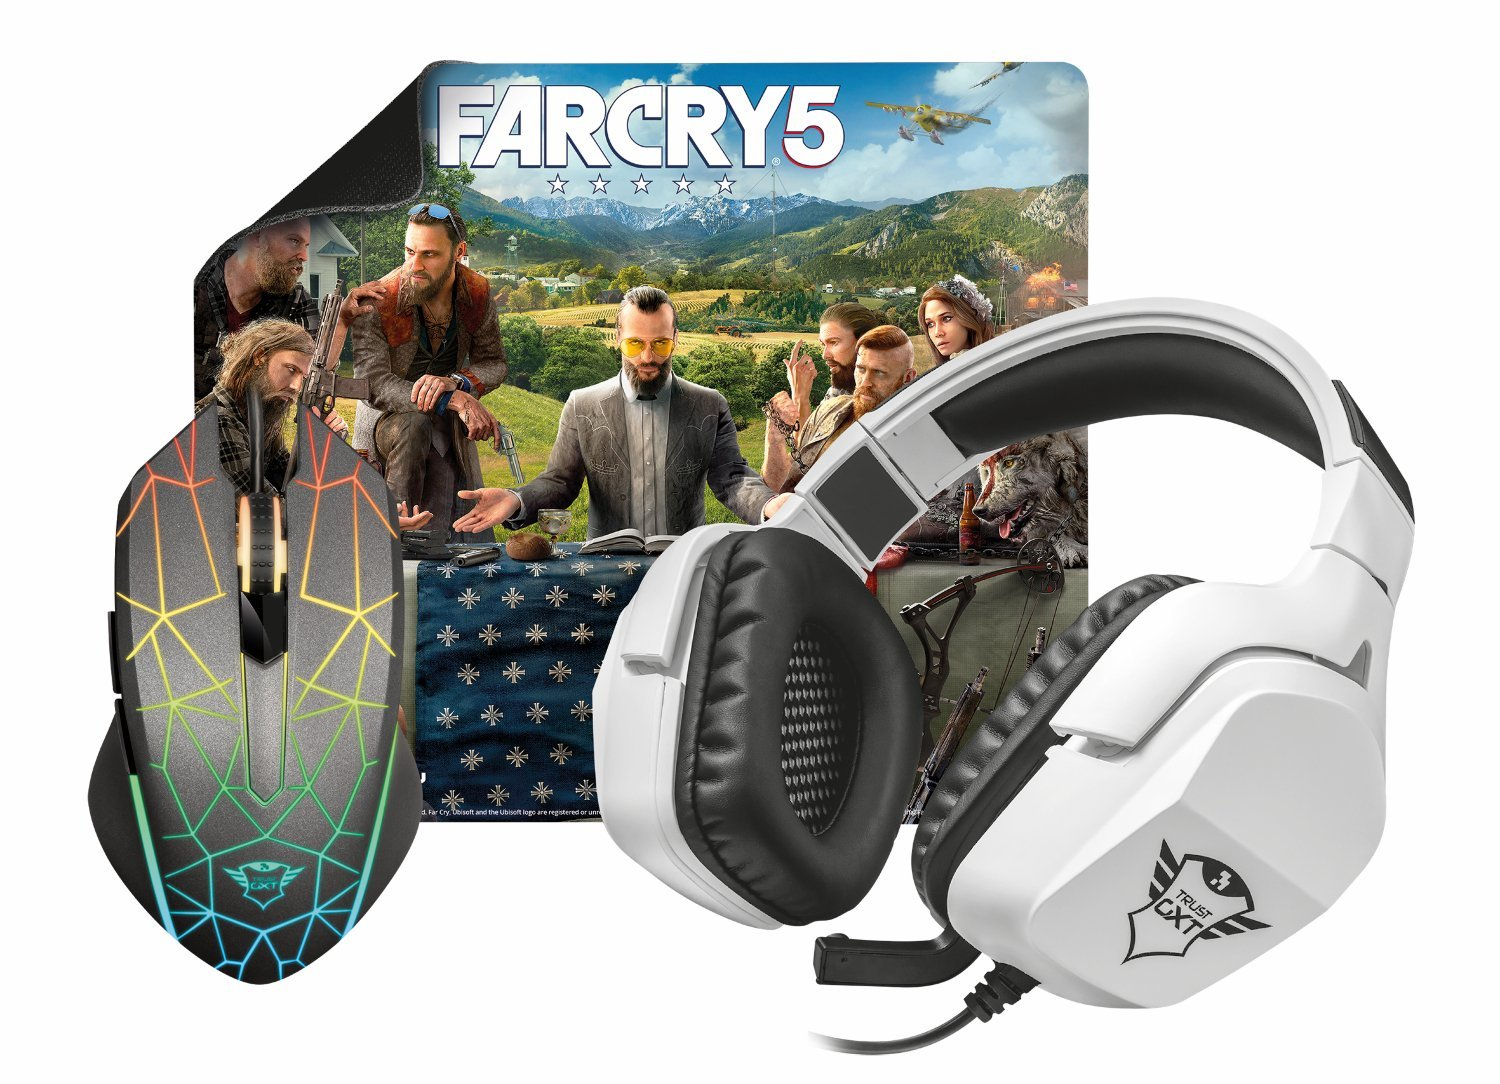 Far Cry Gaming Bundle Heron/Creon - Mouse / Surface / Headset / Far Cry 5